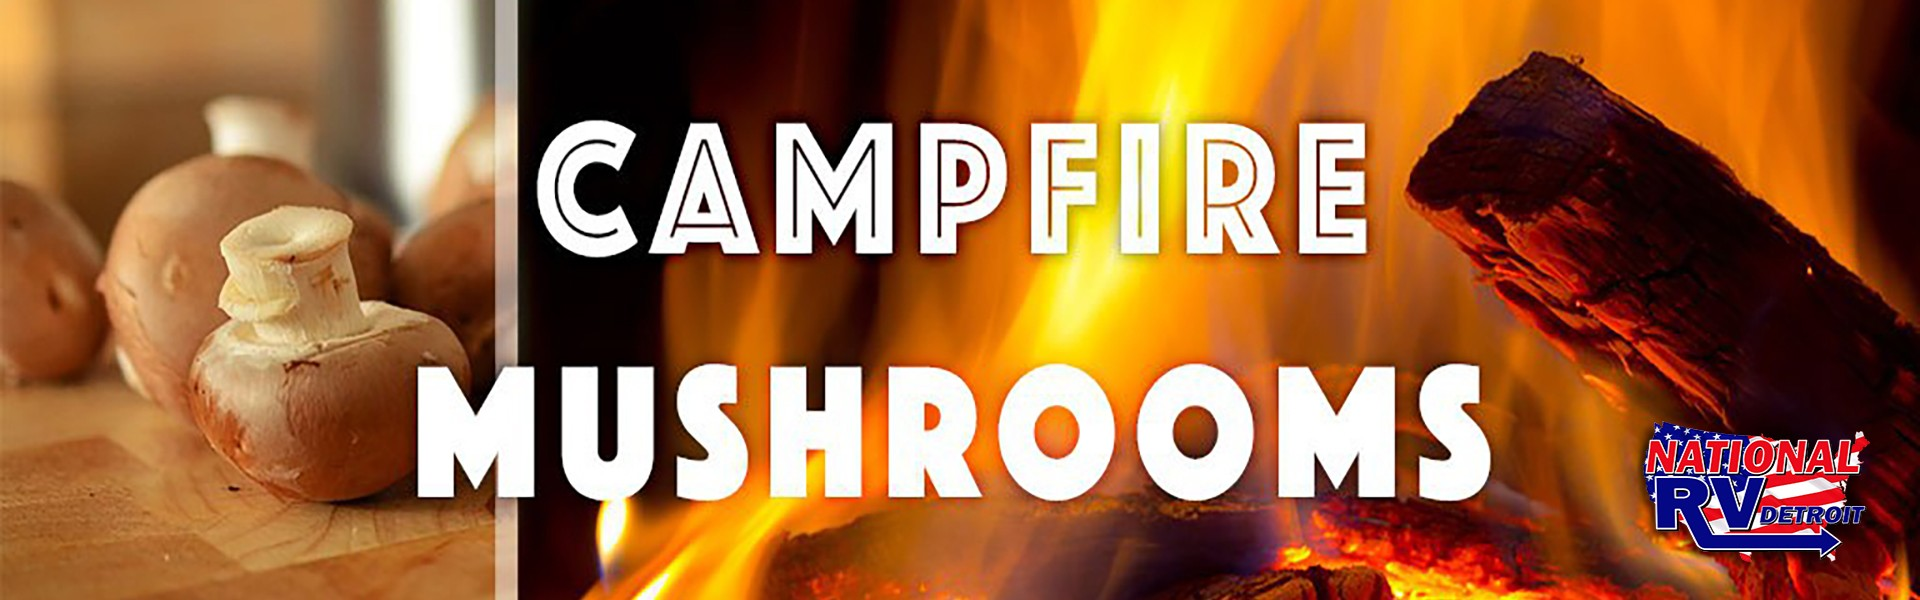 natrv-campfire-mushrooms-banner